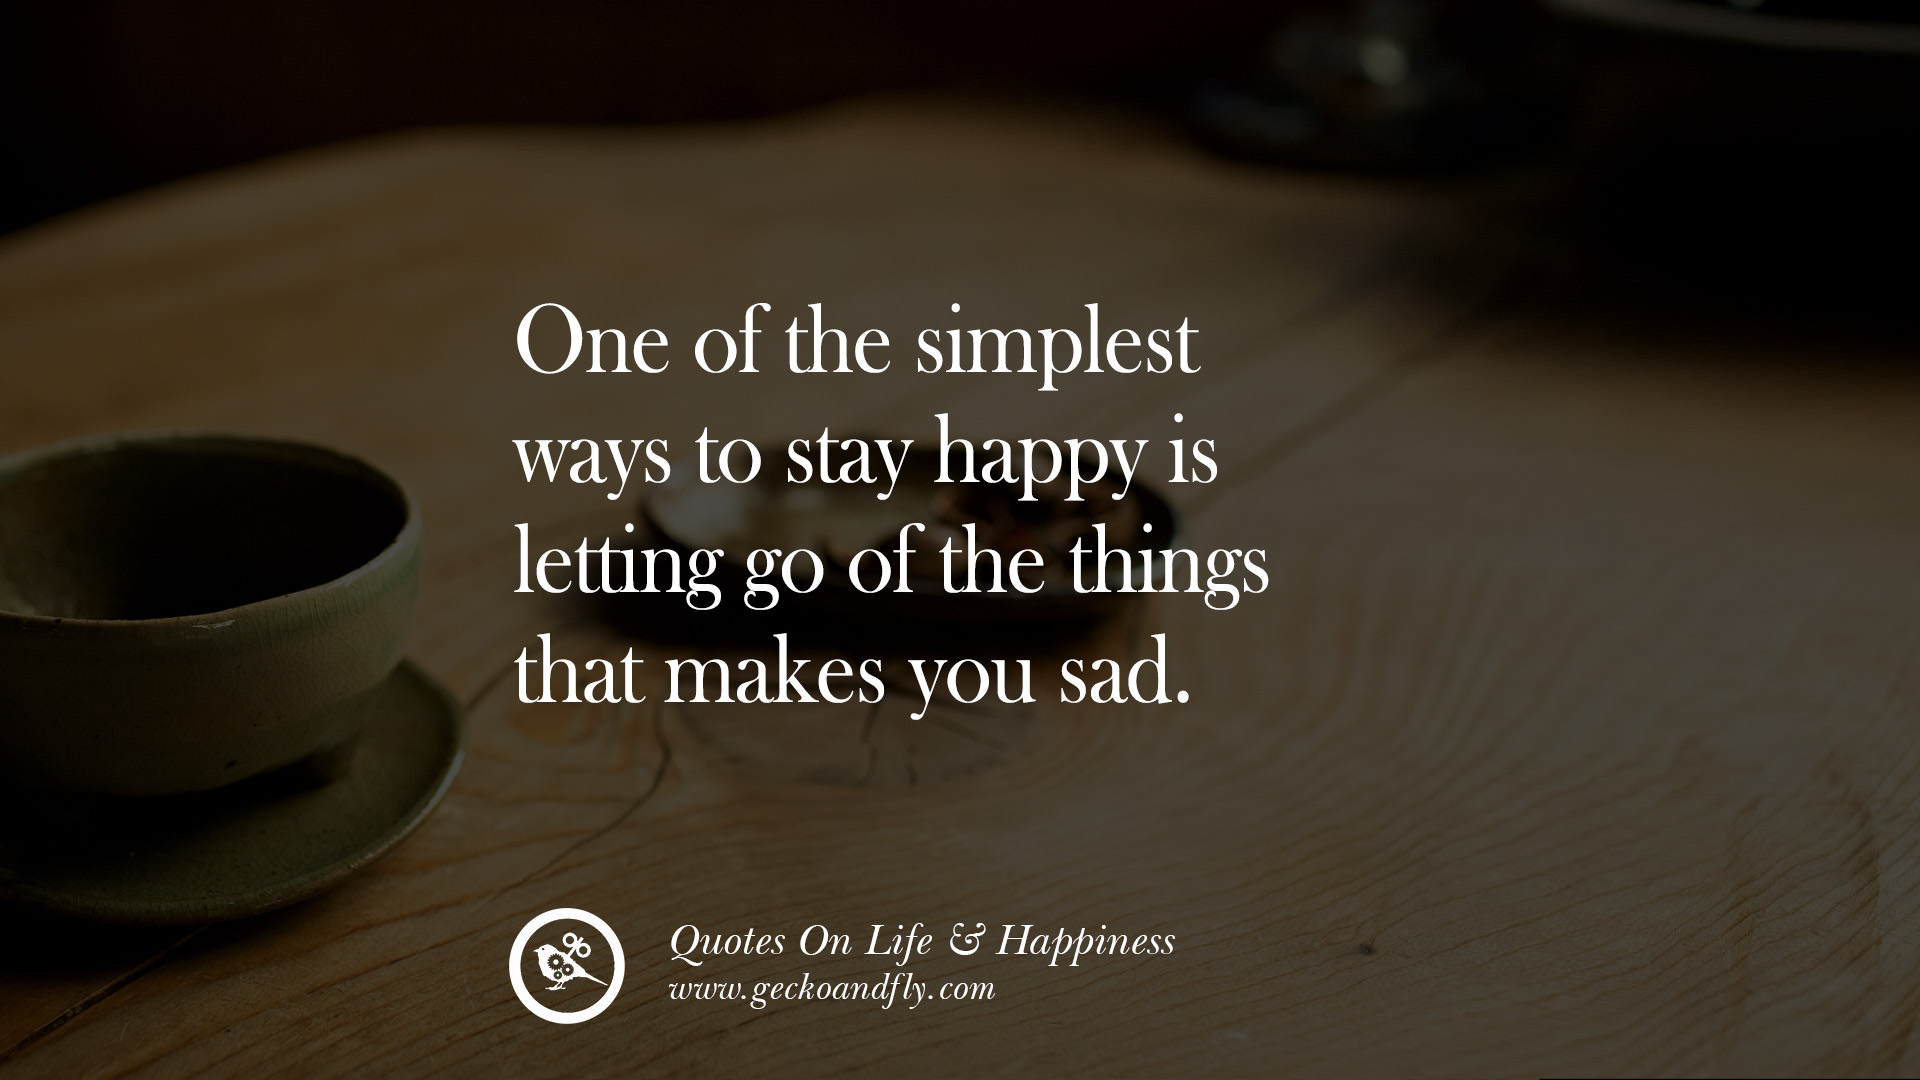 16 Beautiful Quotes About Being Happy With Life, Love. Positive Uplifting Quotes Pinterest. Dr Seuss Quotes Remember Me And Smile. Kindness Humor Quotes. Humor Quotes Weheartit. Christmas Quotes Unknown Author. Work Learning Quotes. Mom Quotes Missing. Winnie The Pooh Quotes Friendship